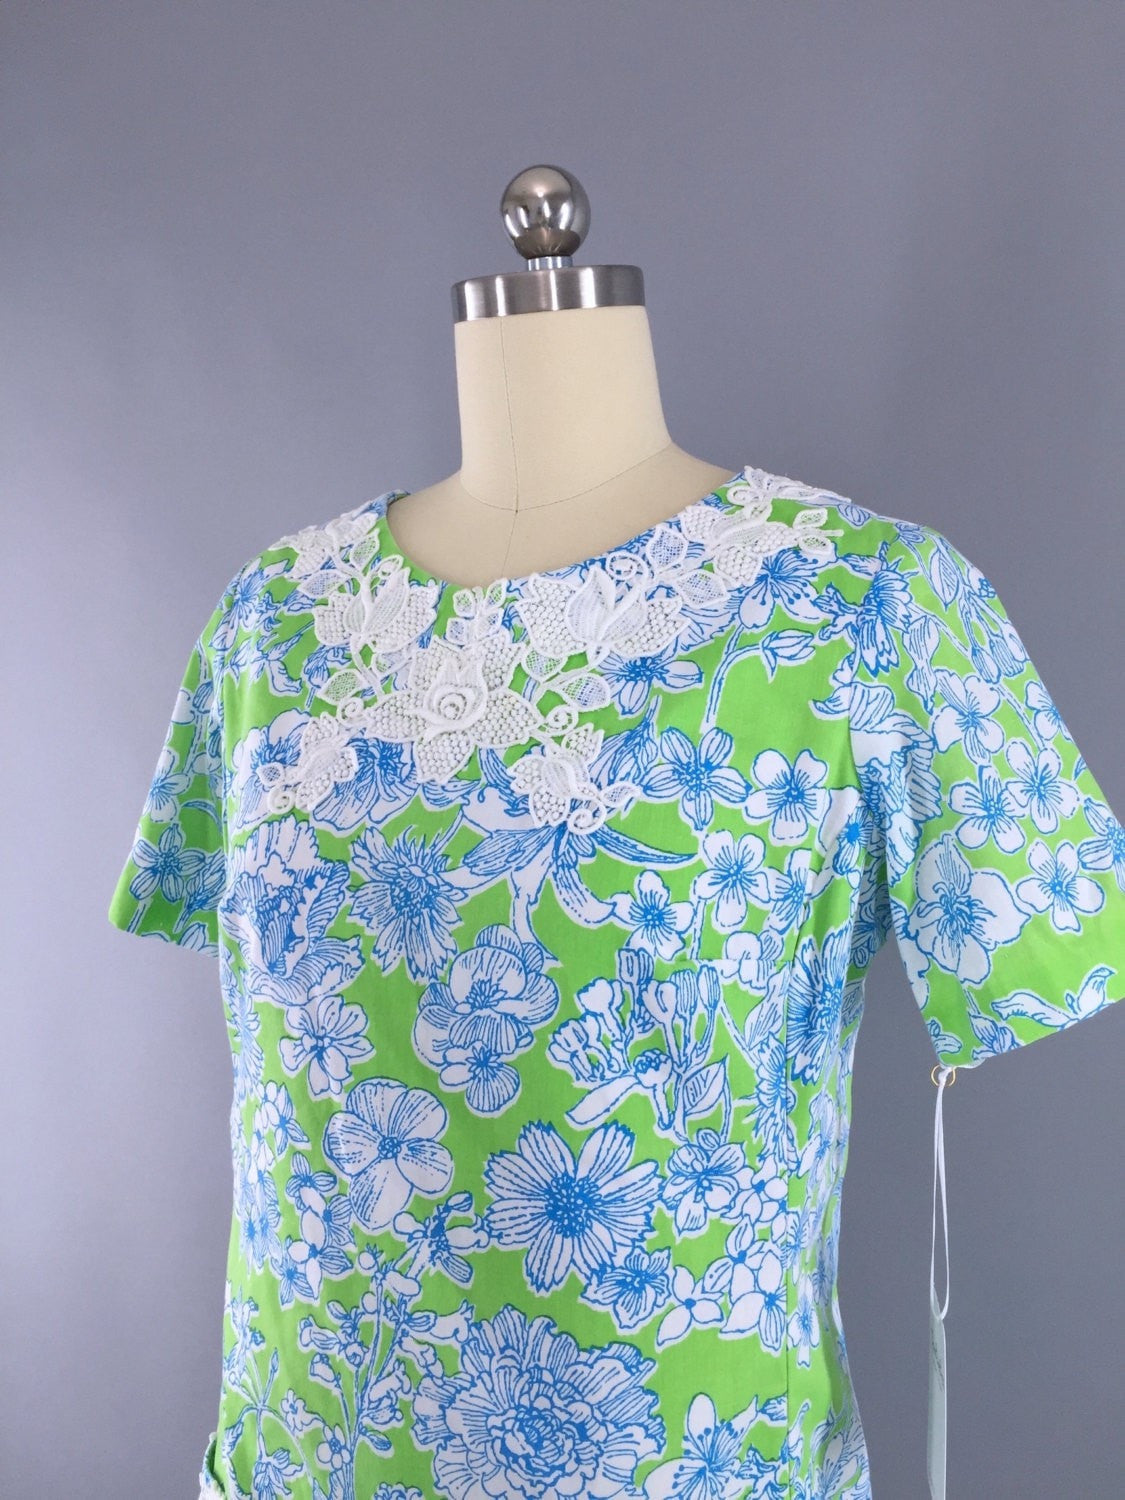 5e168987eb1d14 Vintage 1960s Lilly Pulitzer Dress / Preppy Green and Blue Floral Print